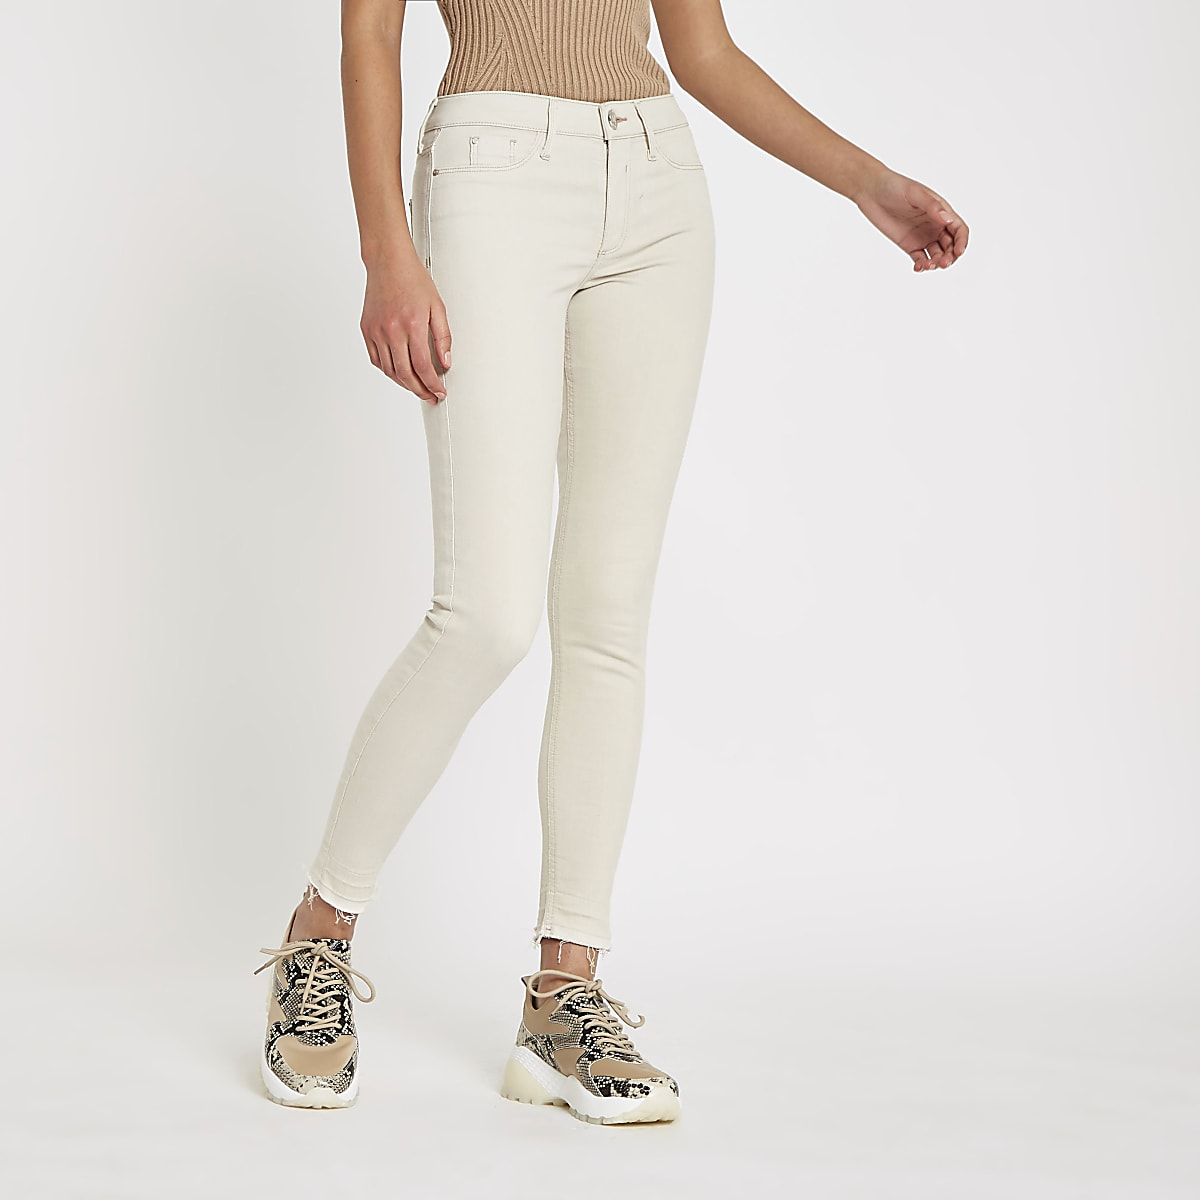 Cream Molly mid rise jeggings